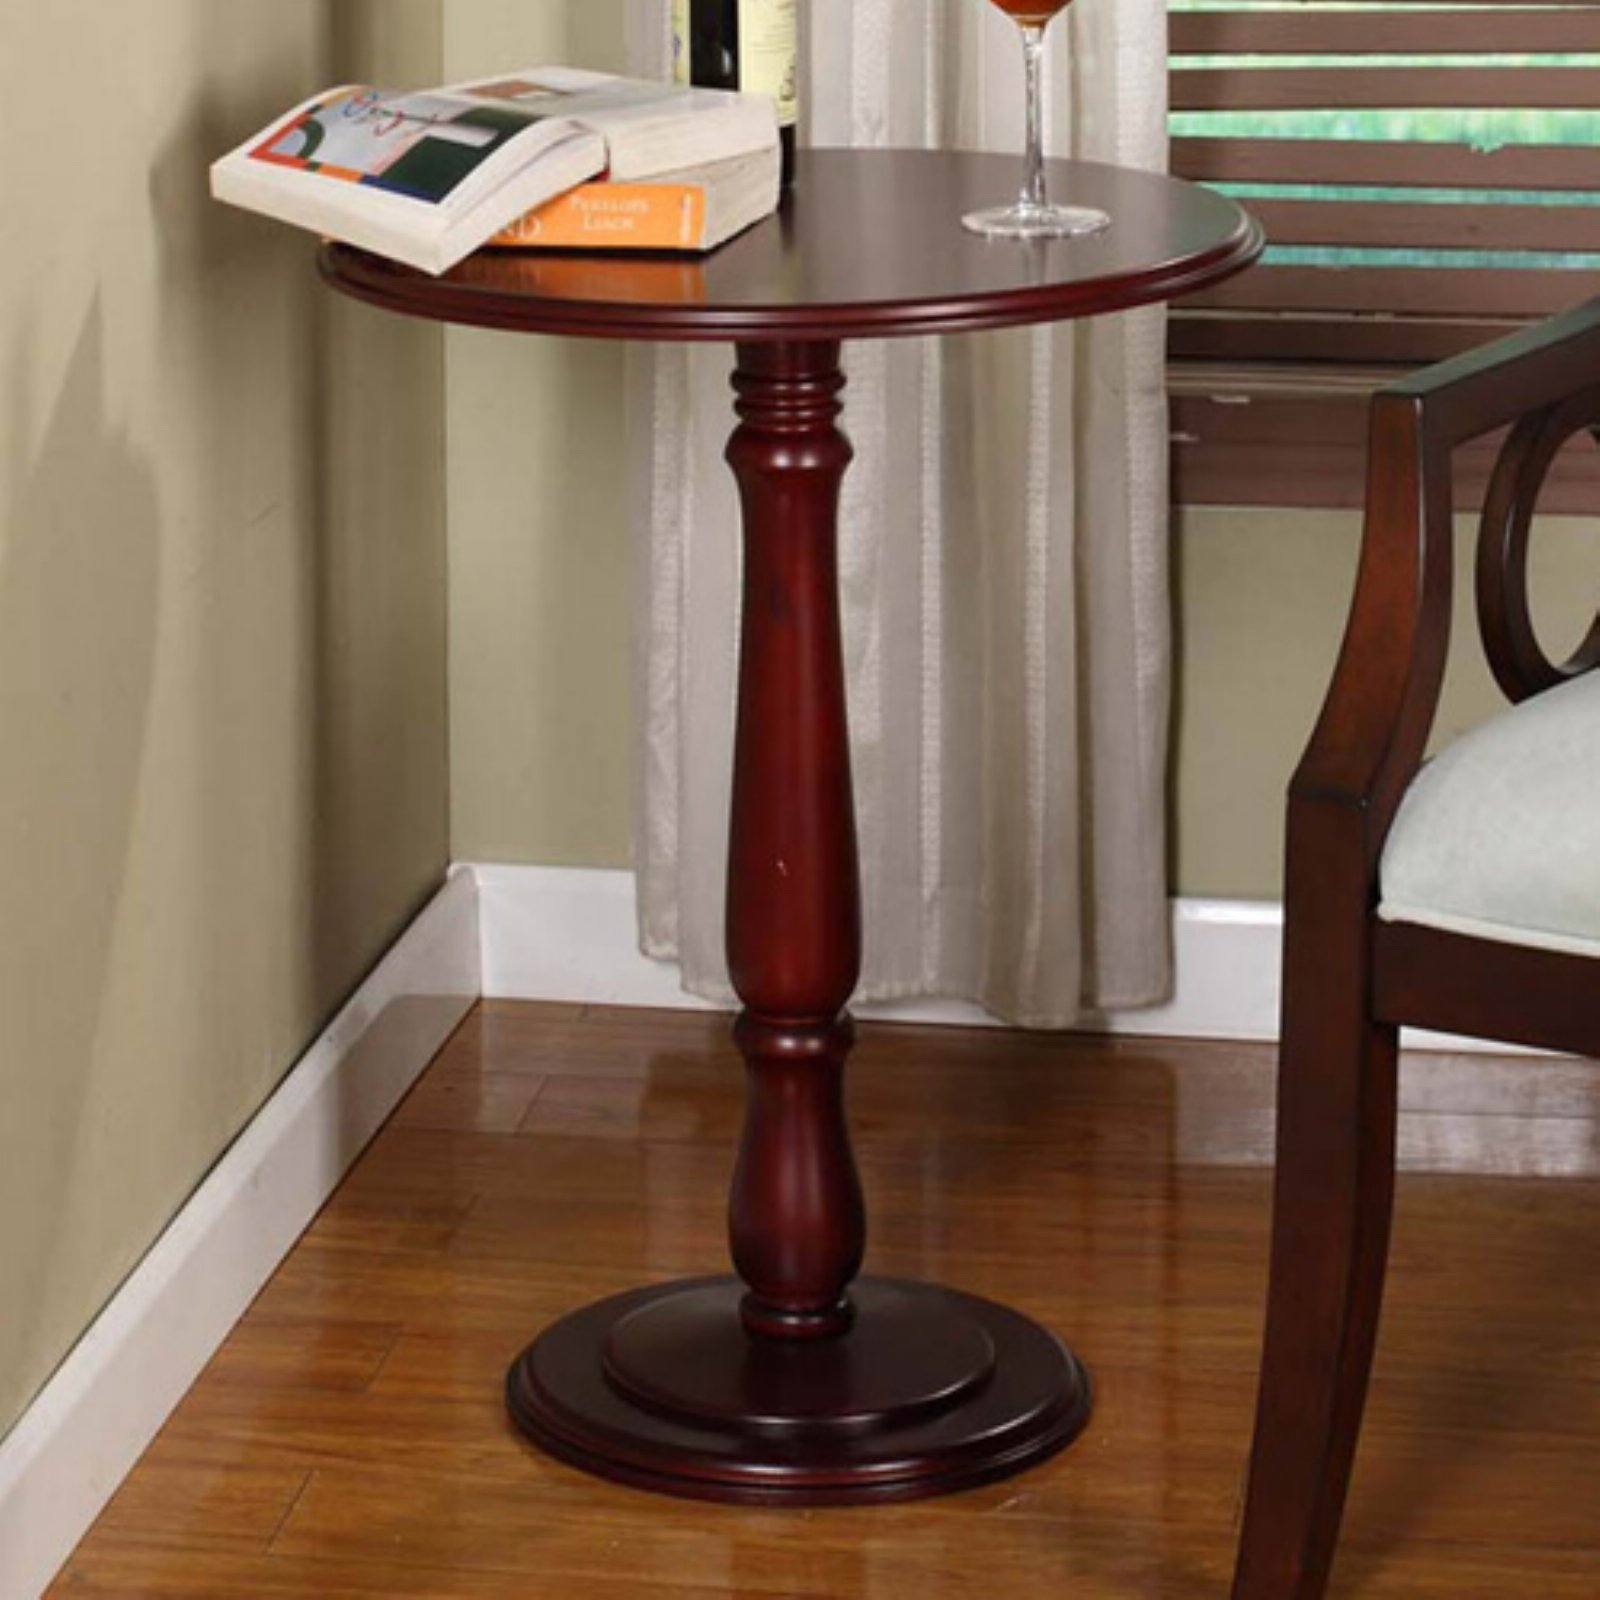 K & B Furniture Plant Stand Cherry by InRoom Designs